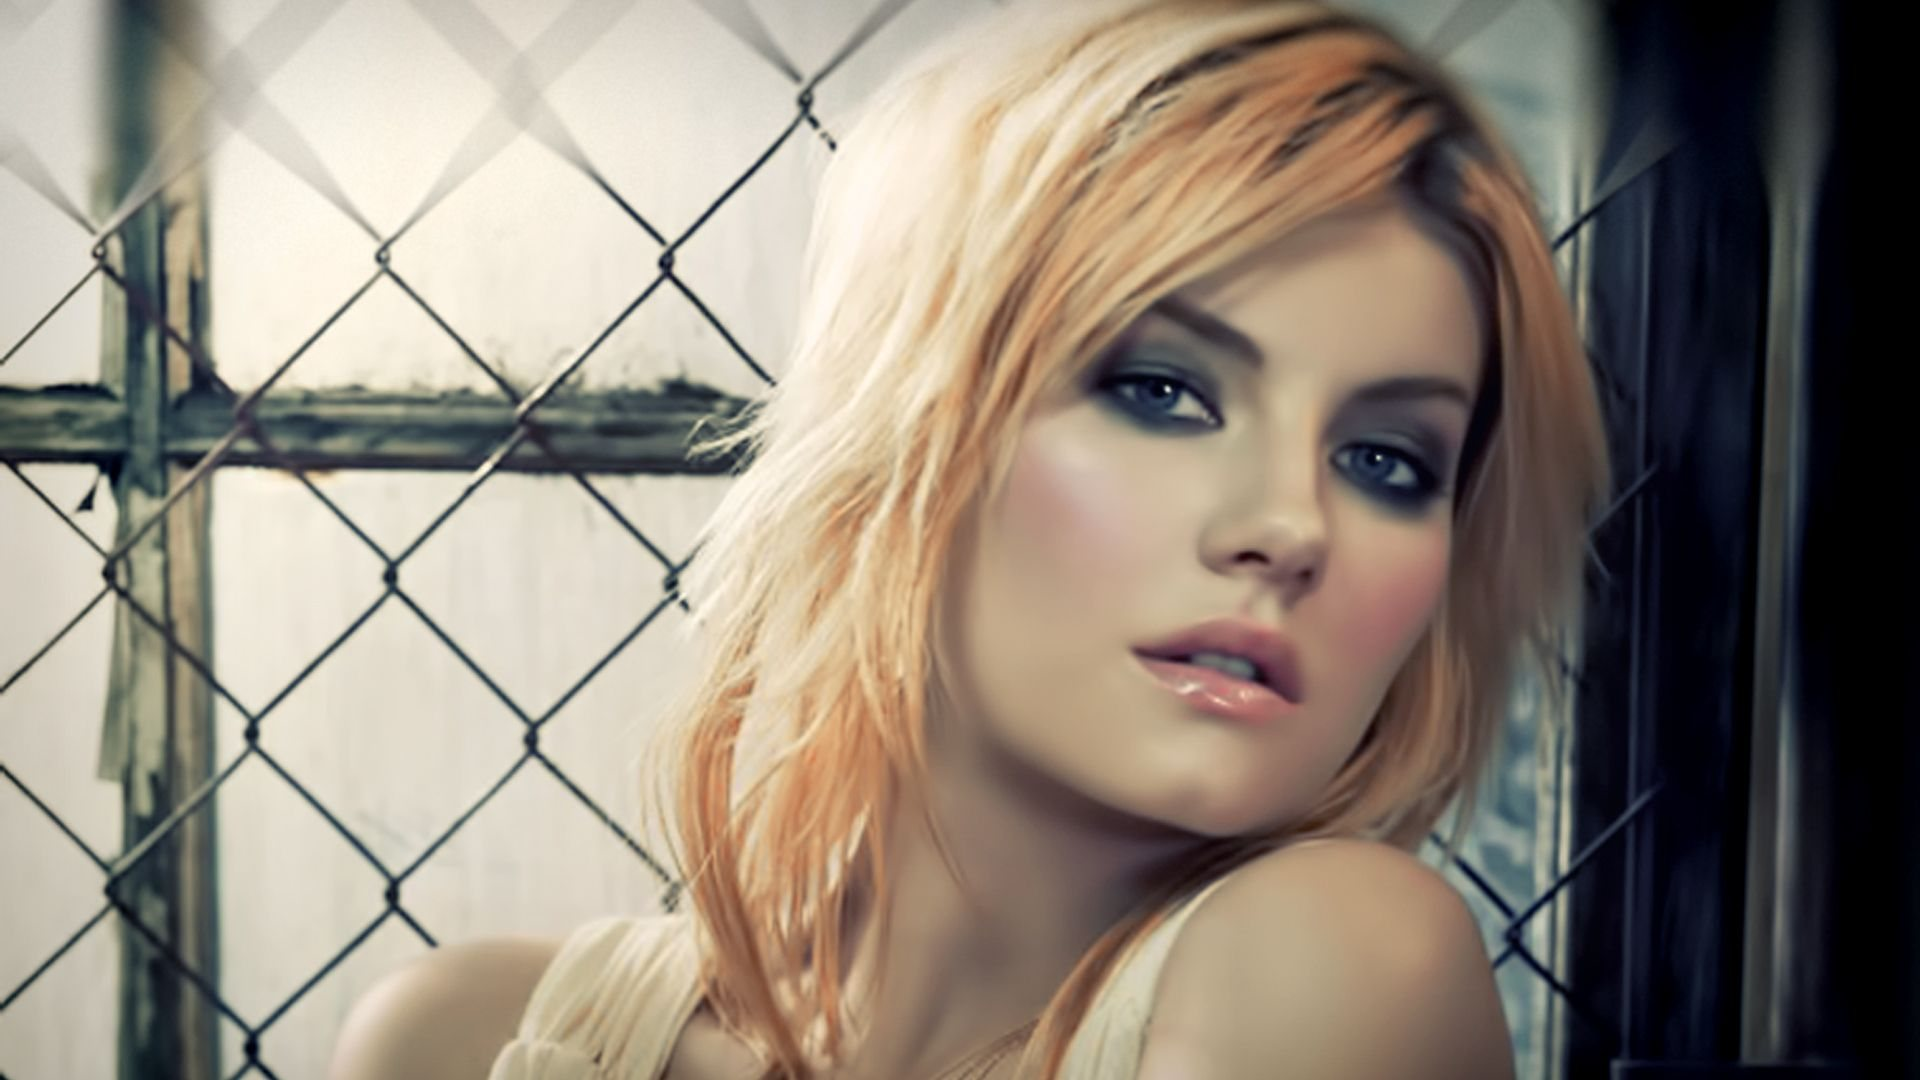 The beautiful Elisha Cuthbert